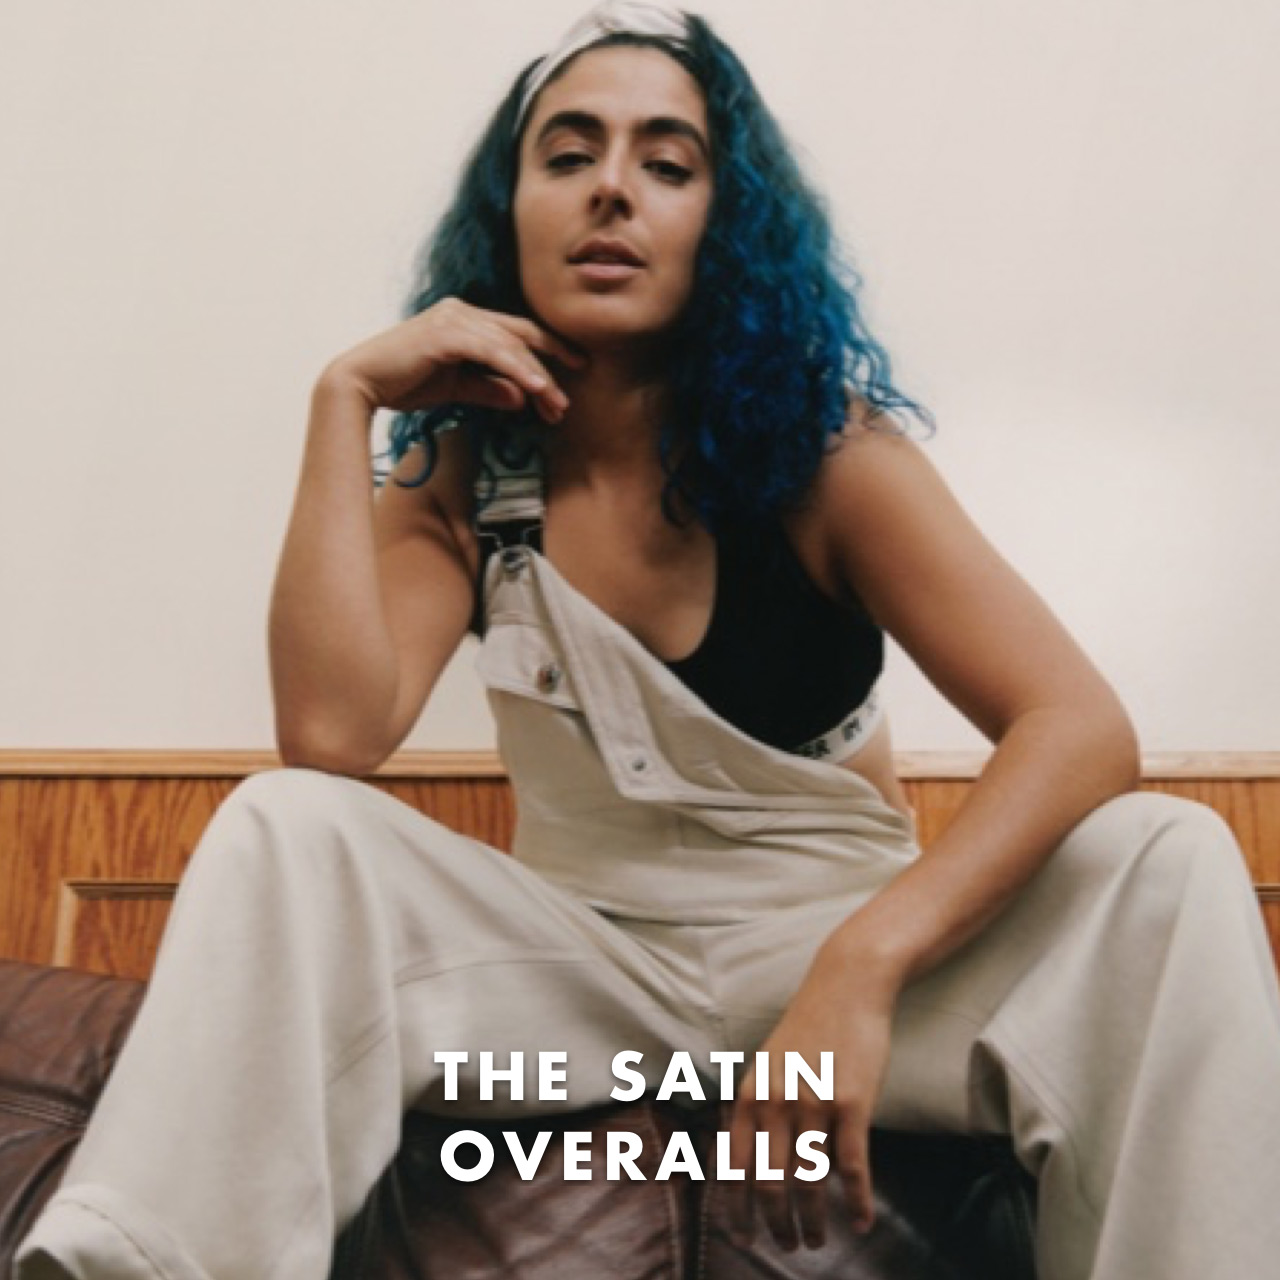 THE SATIN OVERALLS: Adaptable, which can be worn as pants using the integrated belt.